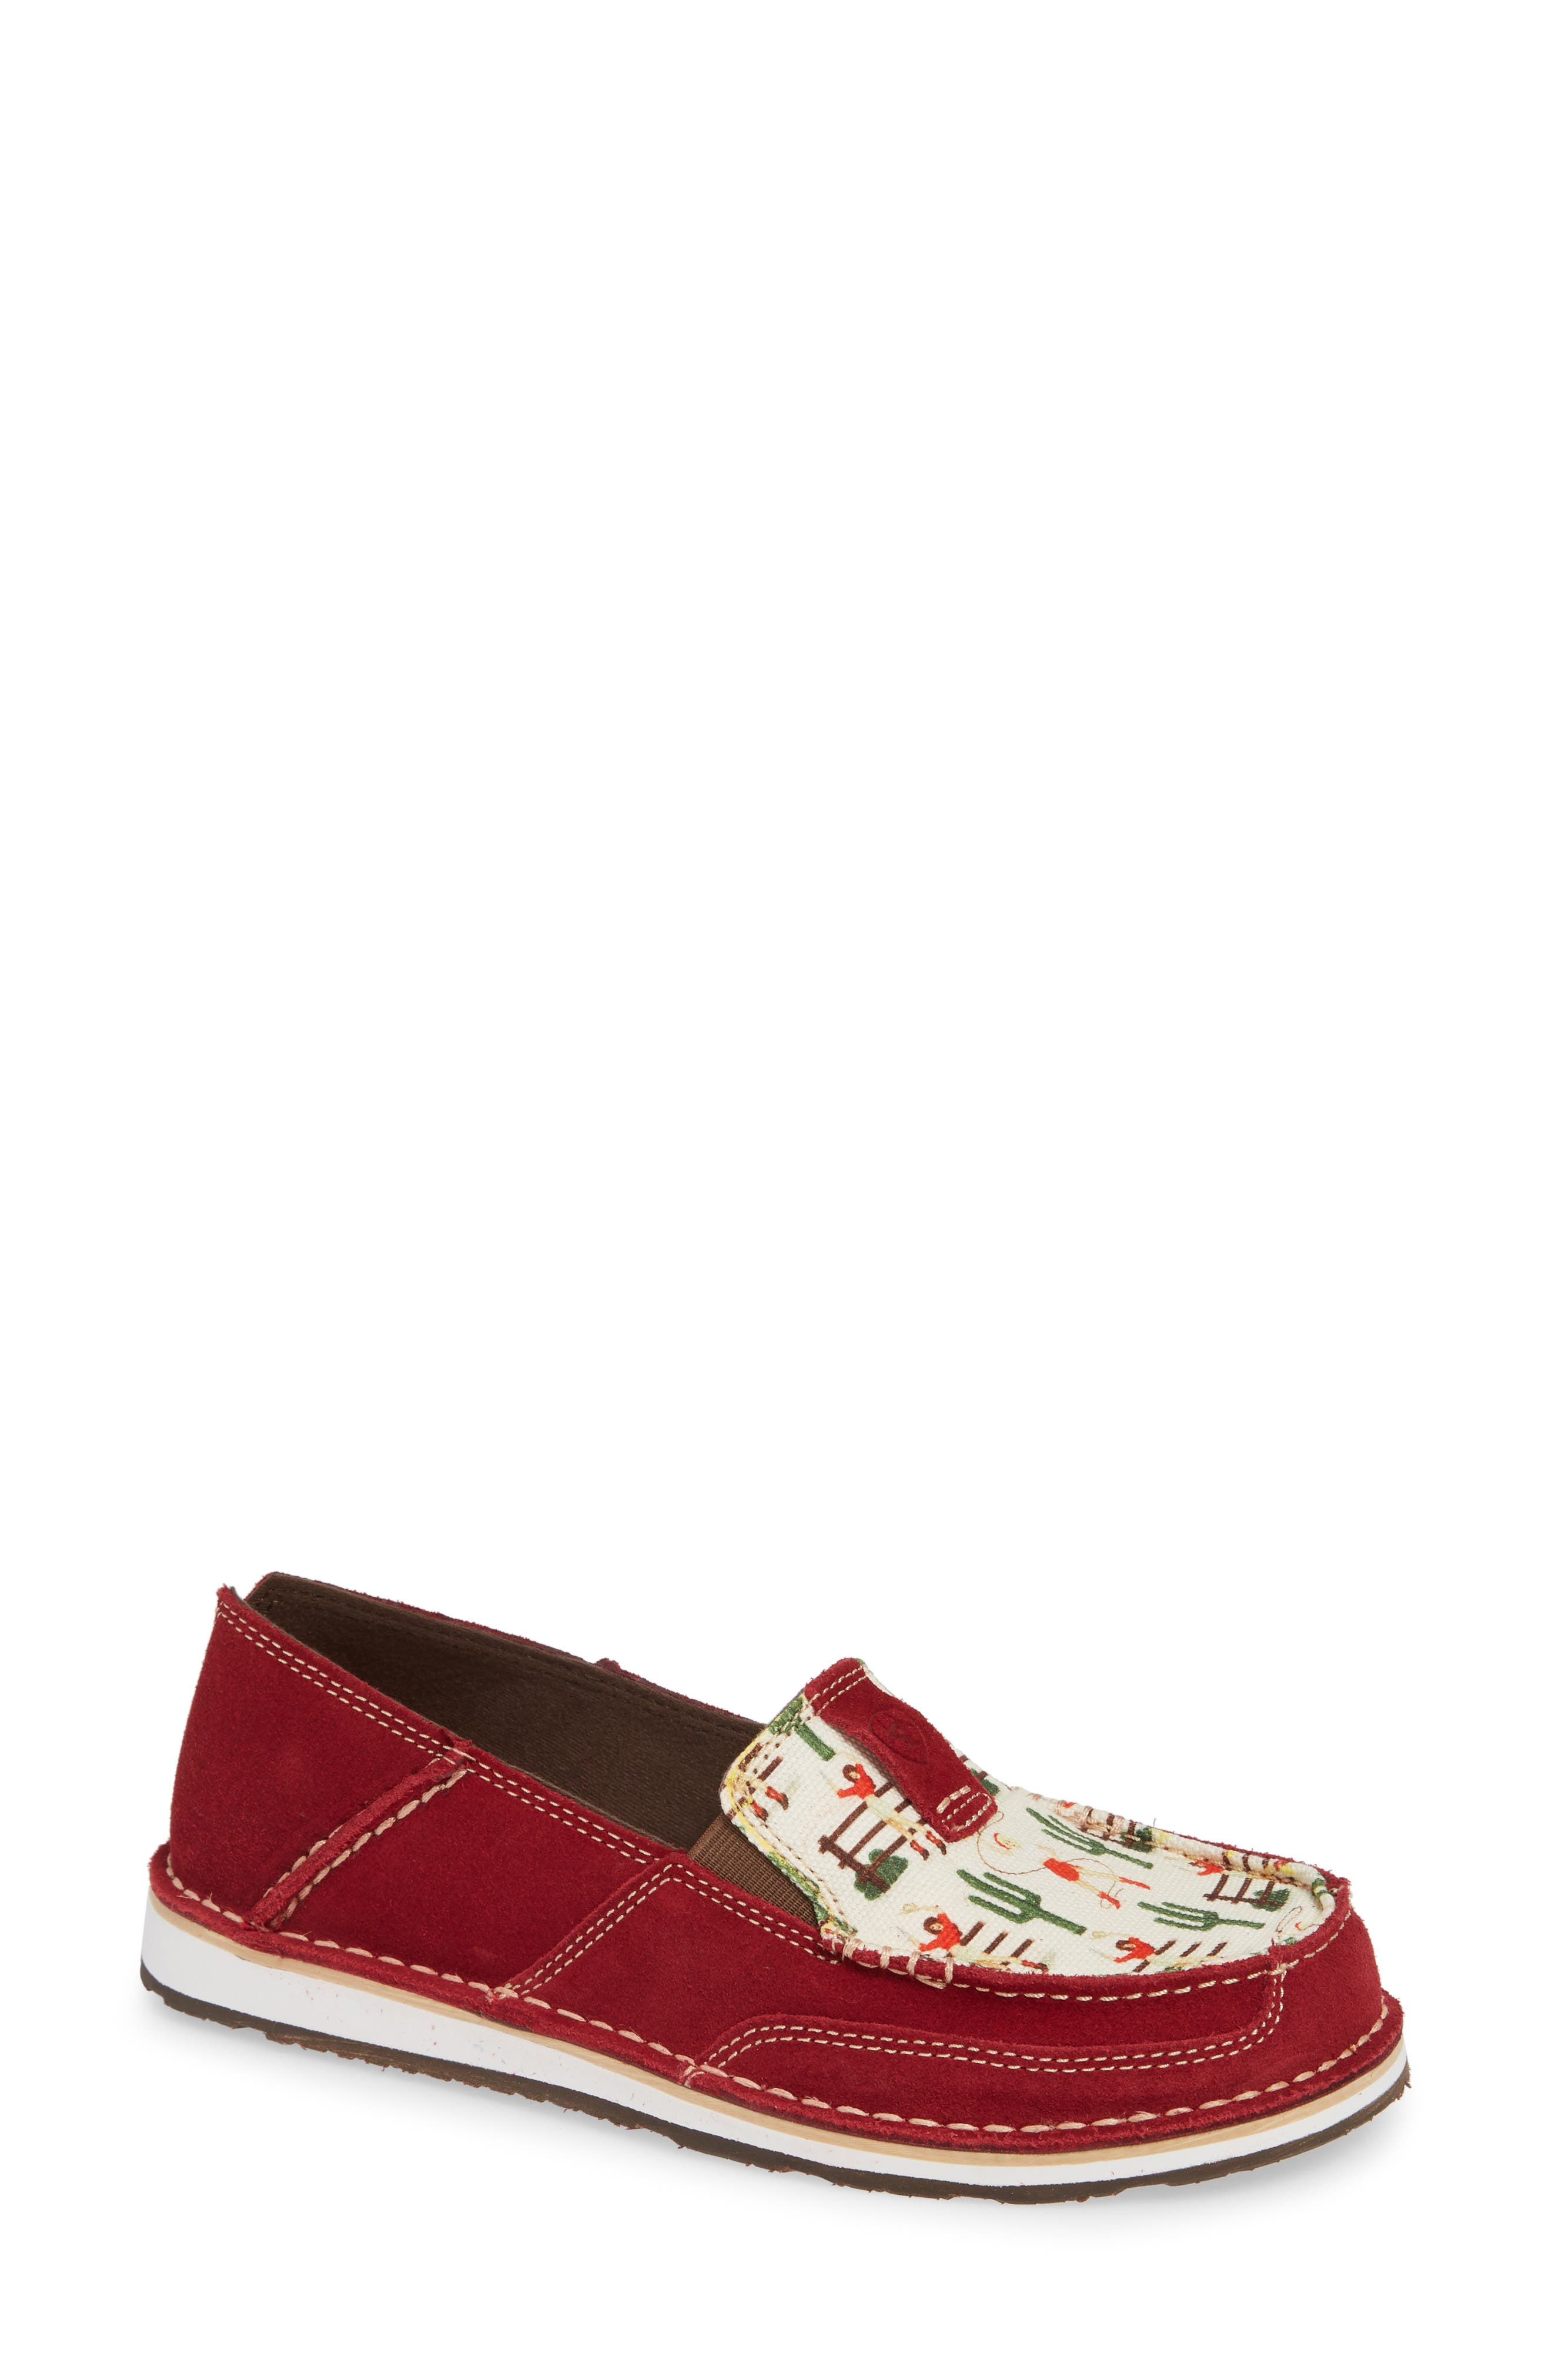 Cruiser Slip-On Loafer,                             Main thumbnail 1, color,                             CRANBERRY VINTAGE LEATHER